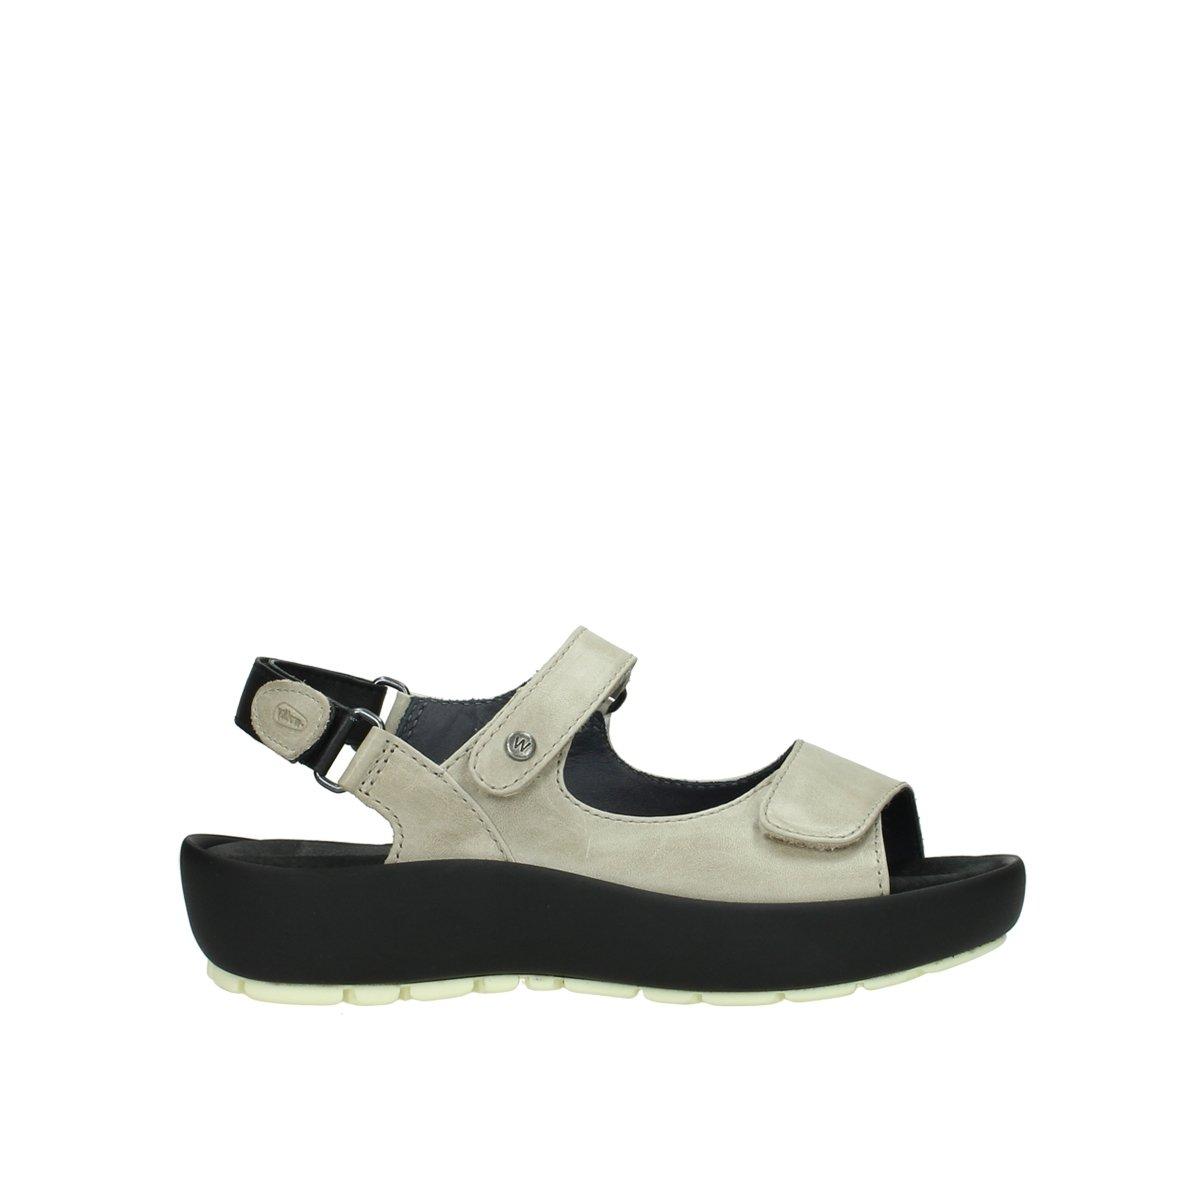 Wolky 36 Comfort Rio B07BNWGMCD 36 Wolky M EU|30150 Taupe Leather a6df3c